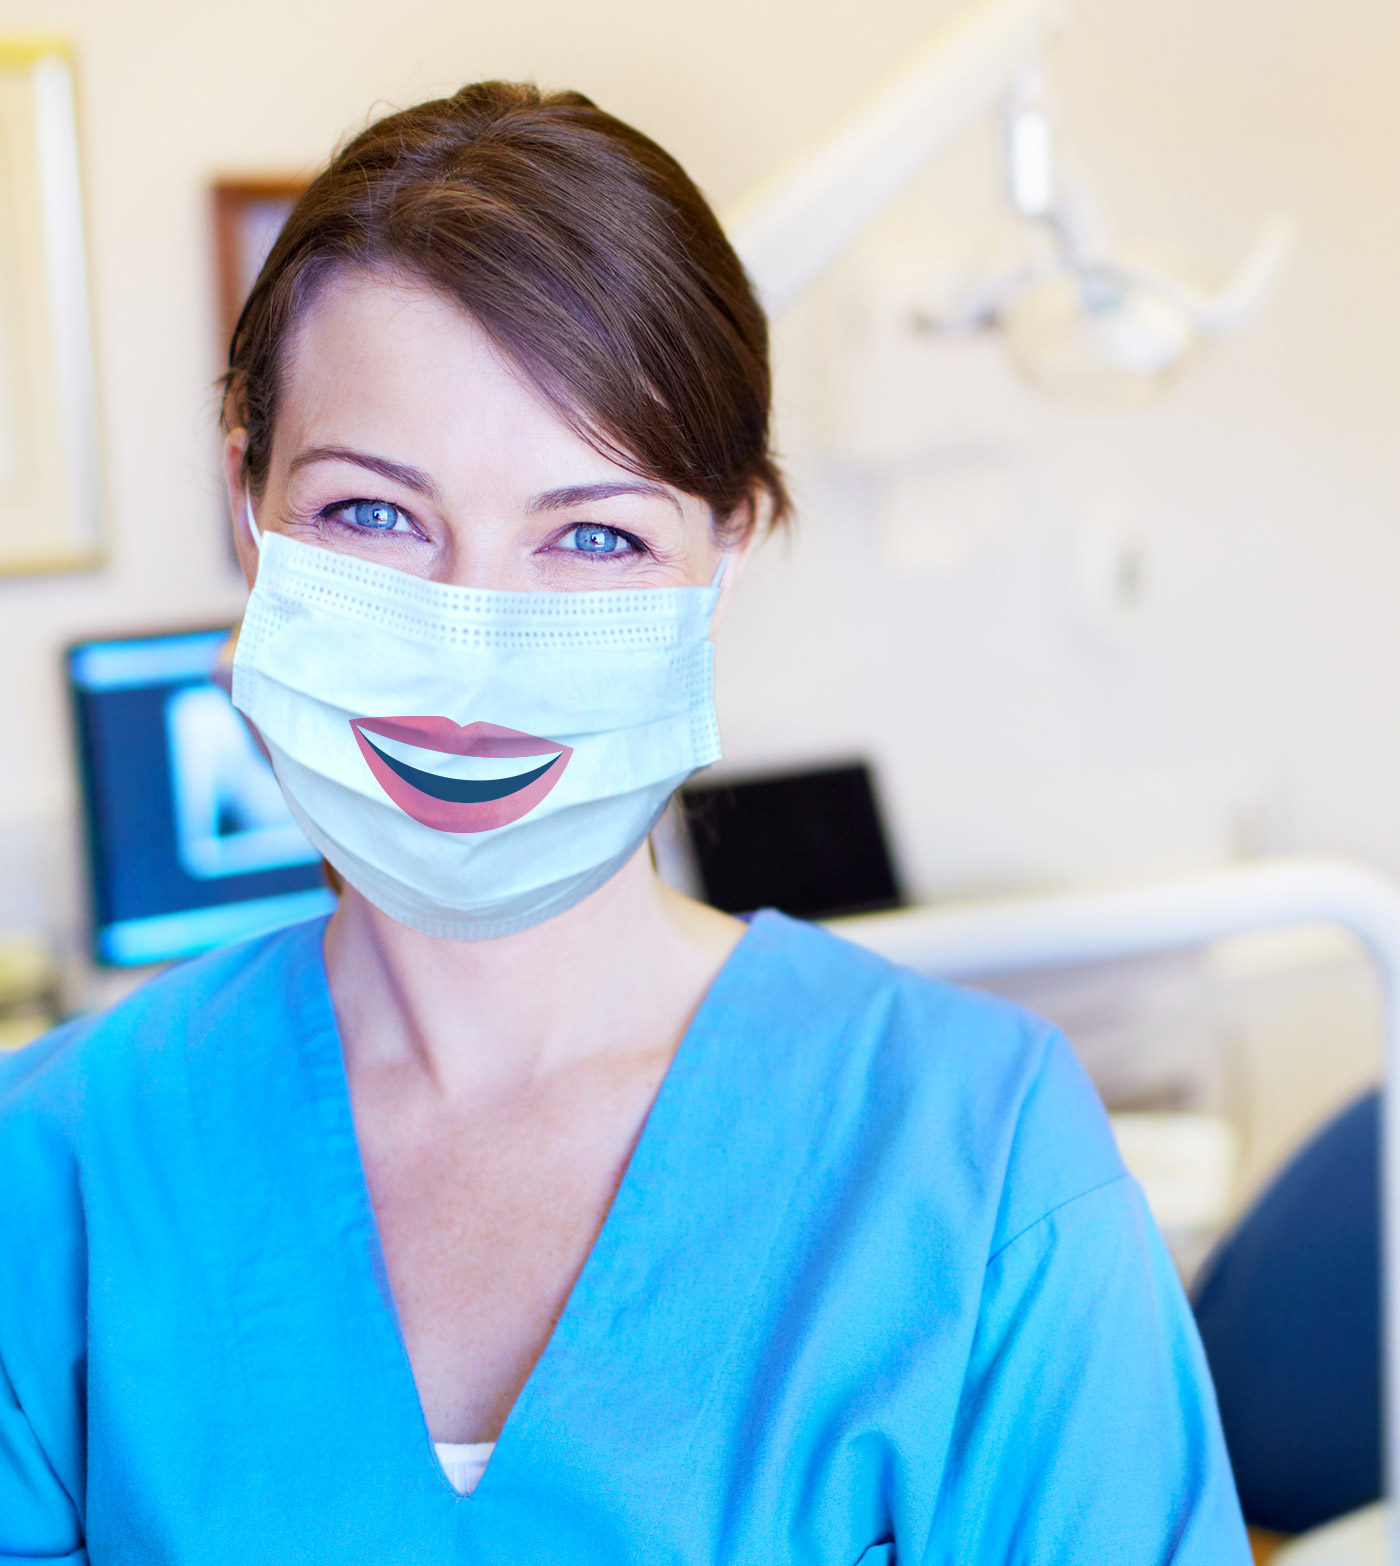 A Bupa Dental Care nurse with mask.